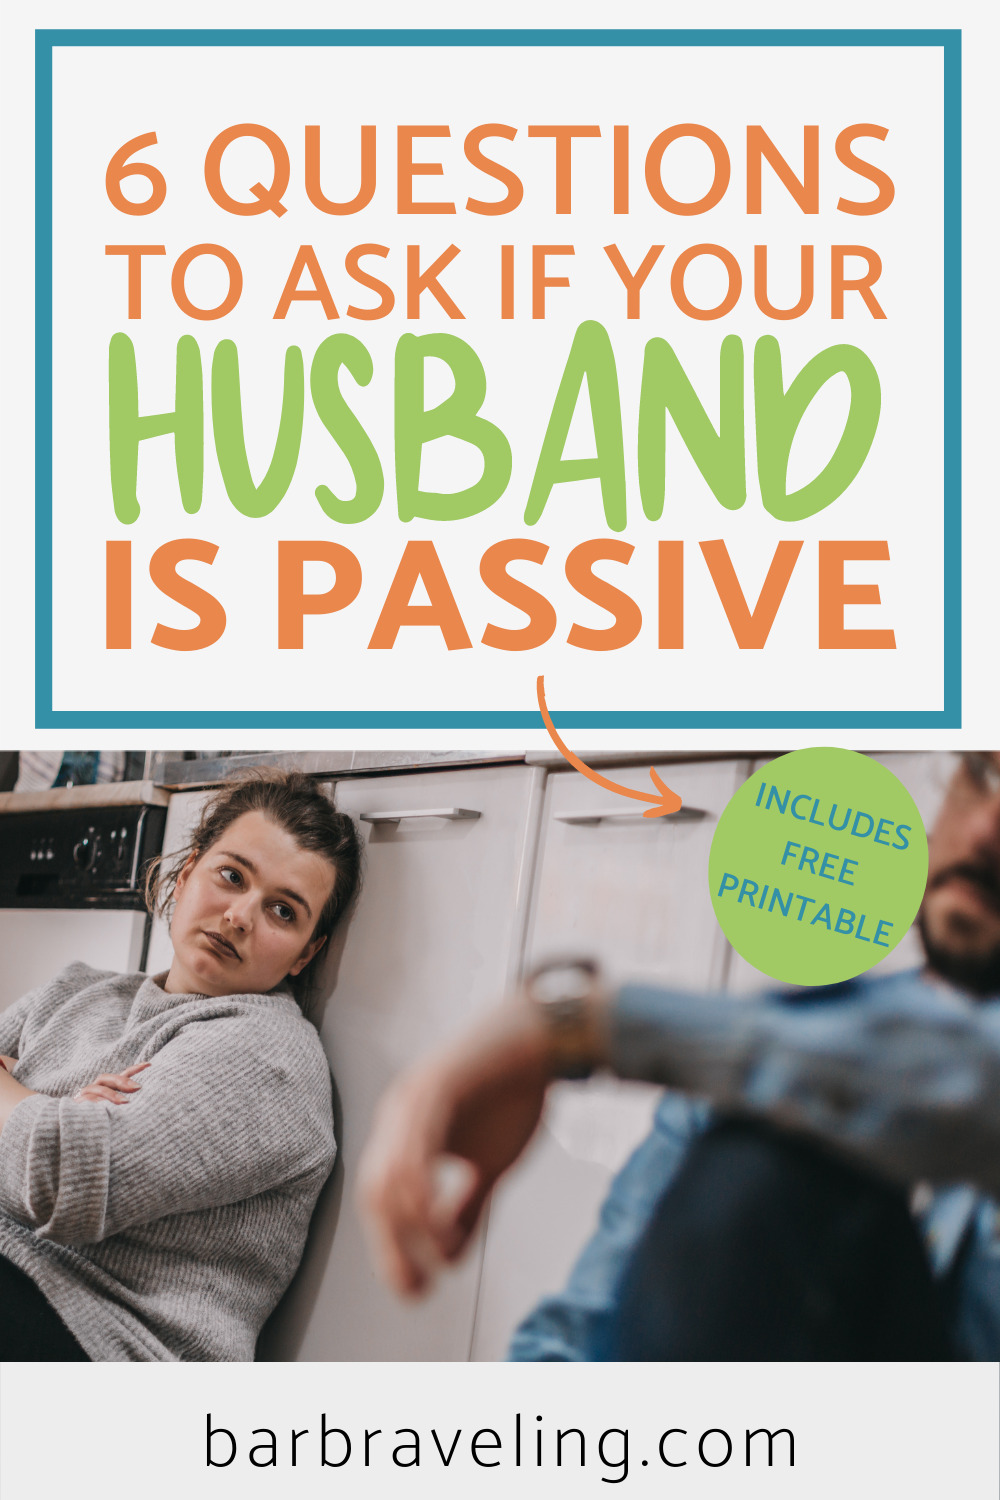 When Your Husband is Passive - 6 Questions to Ask